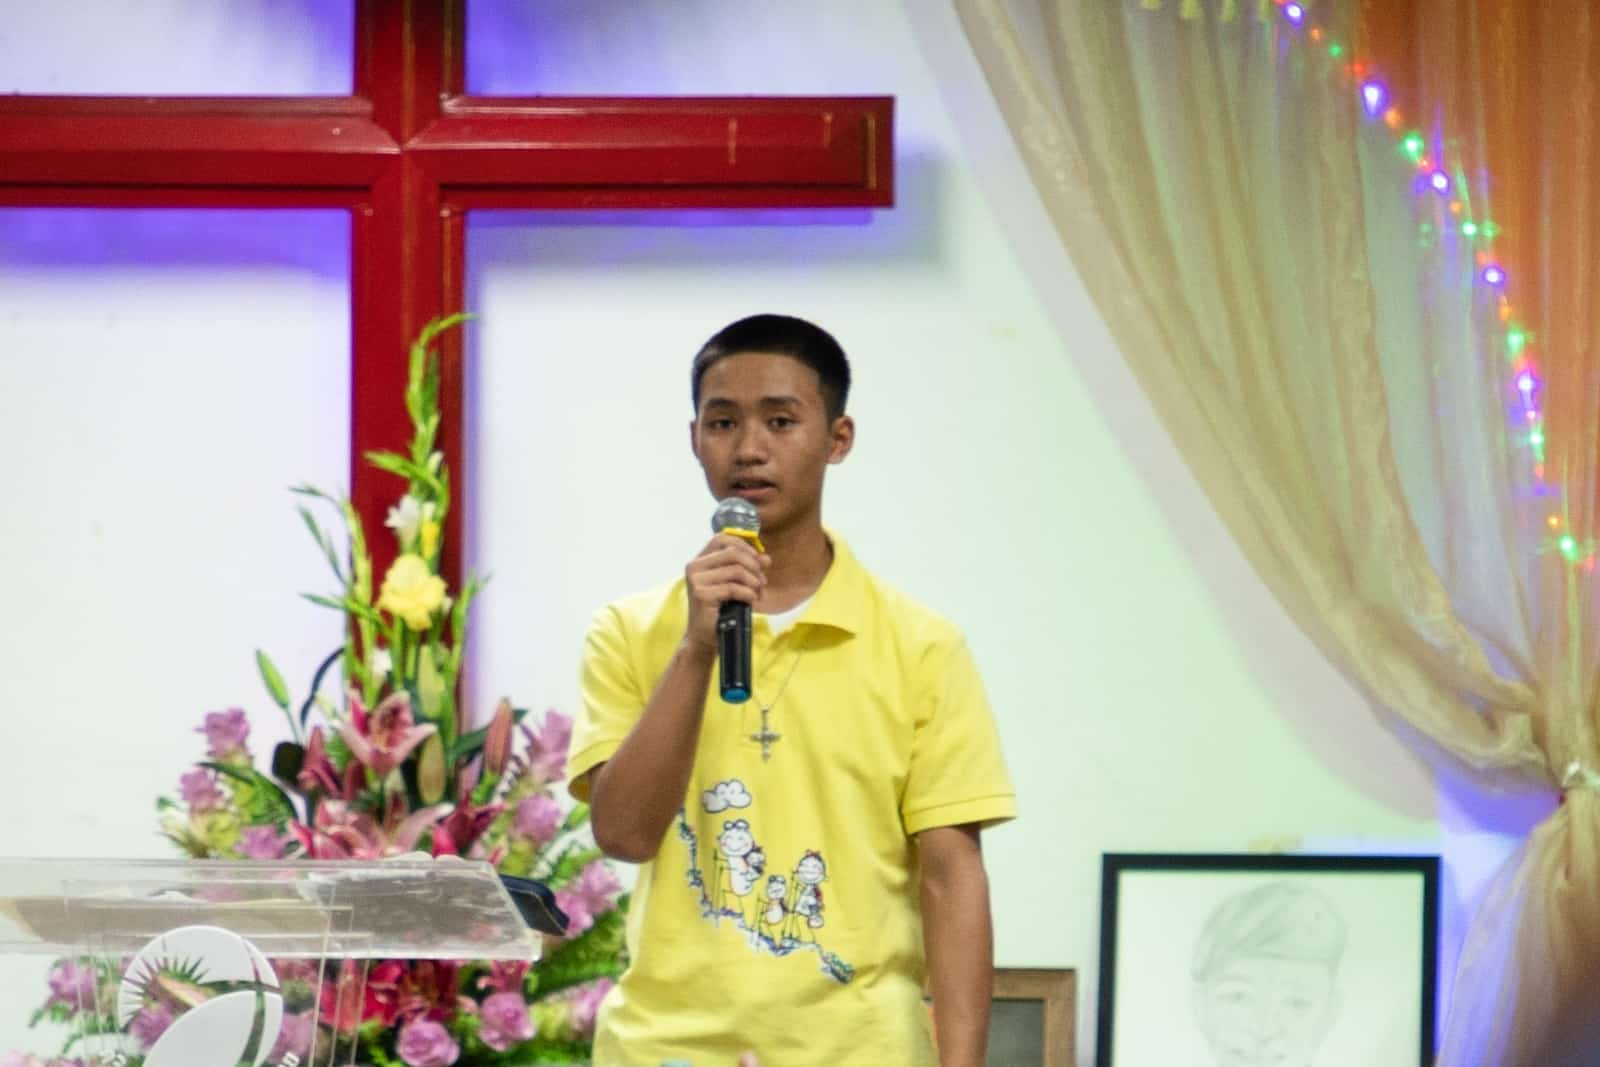 Thailand Cave Rescue: Adun and His Church Gather to Praise God